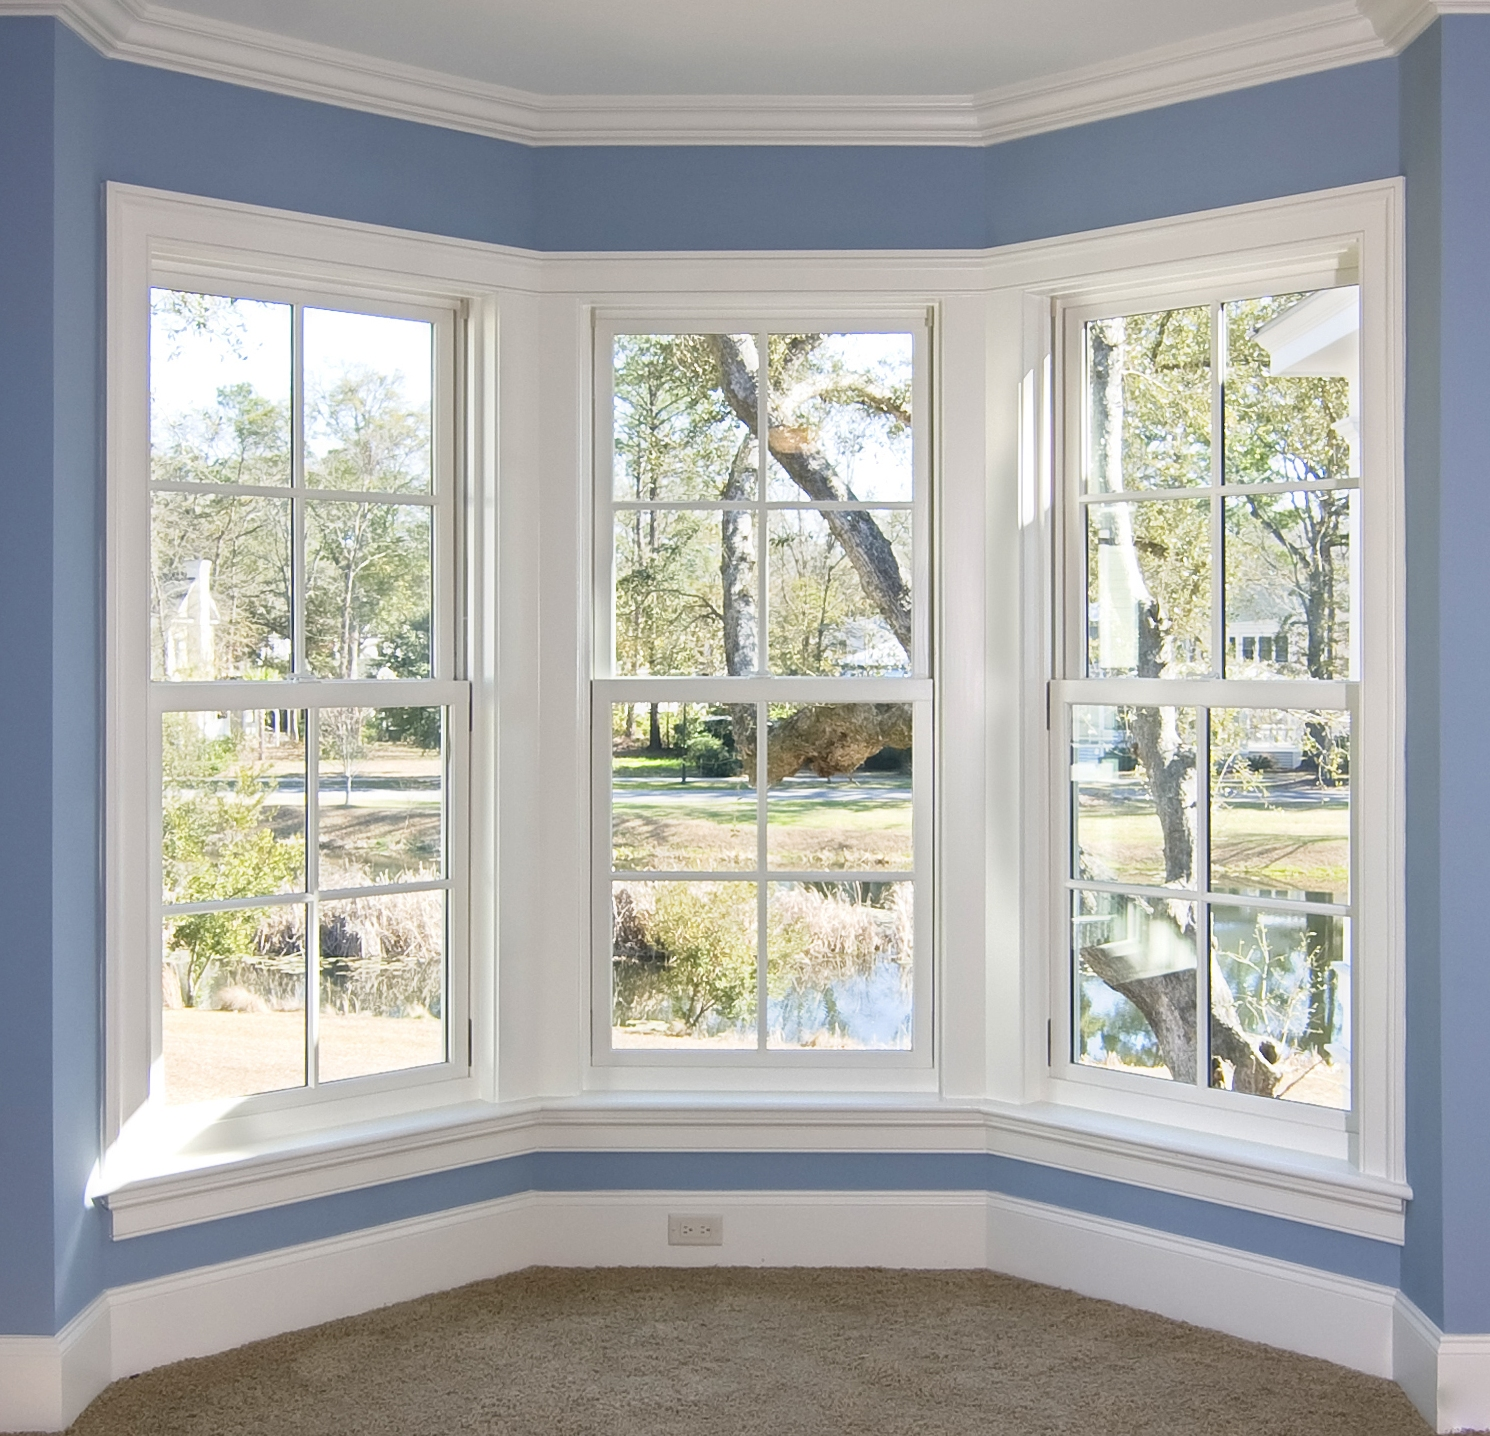 11 Signs that You Need Home Window Replacement  Town & Country